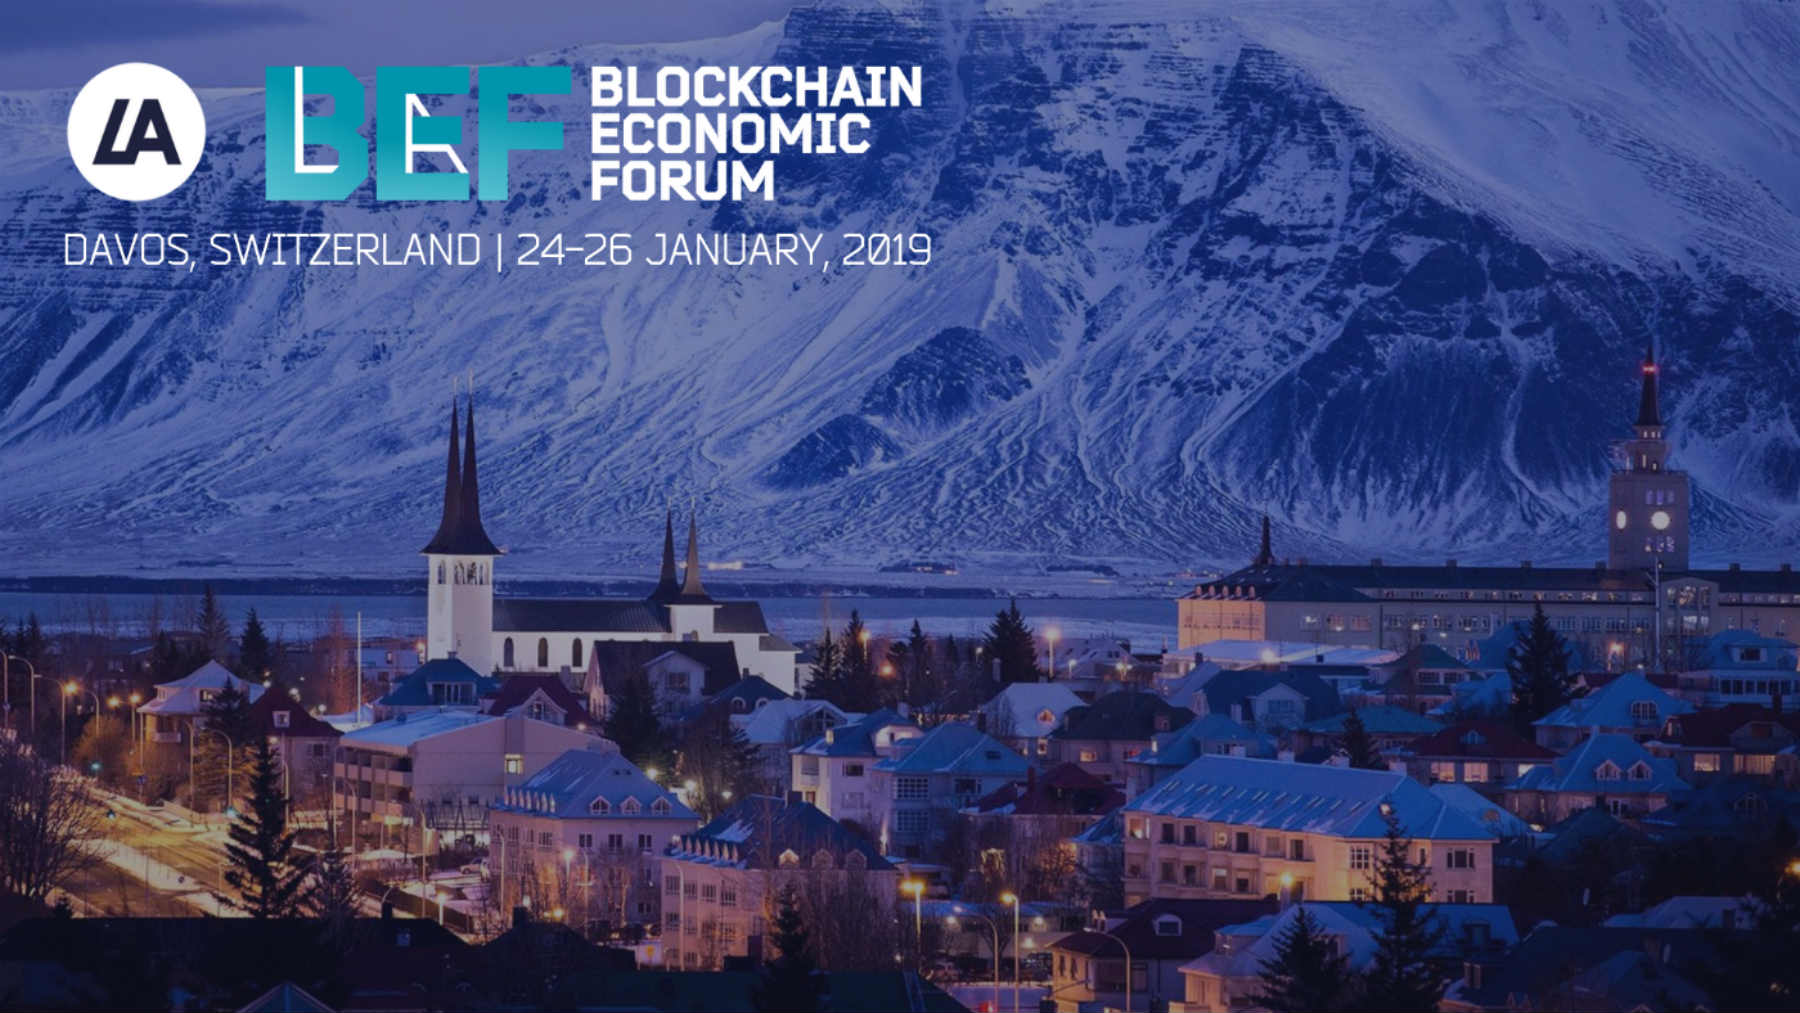 E&S Group will be participating at the LATOKEN Blockchain Business Forum in Davos